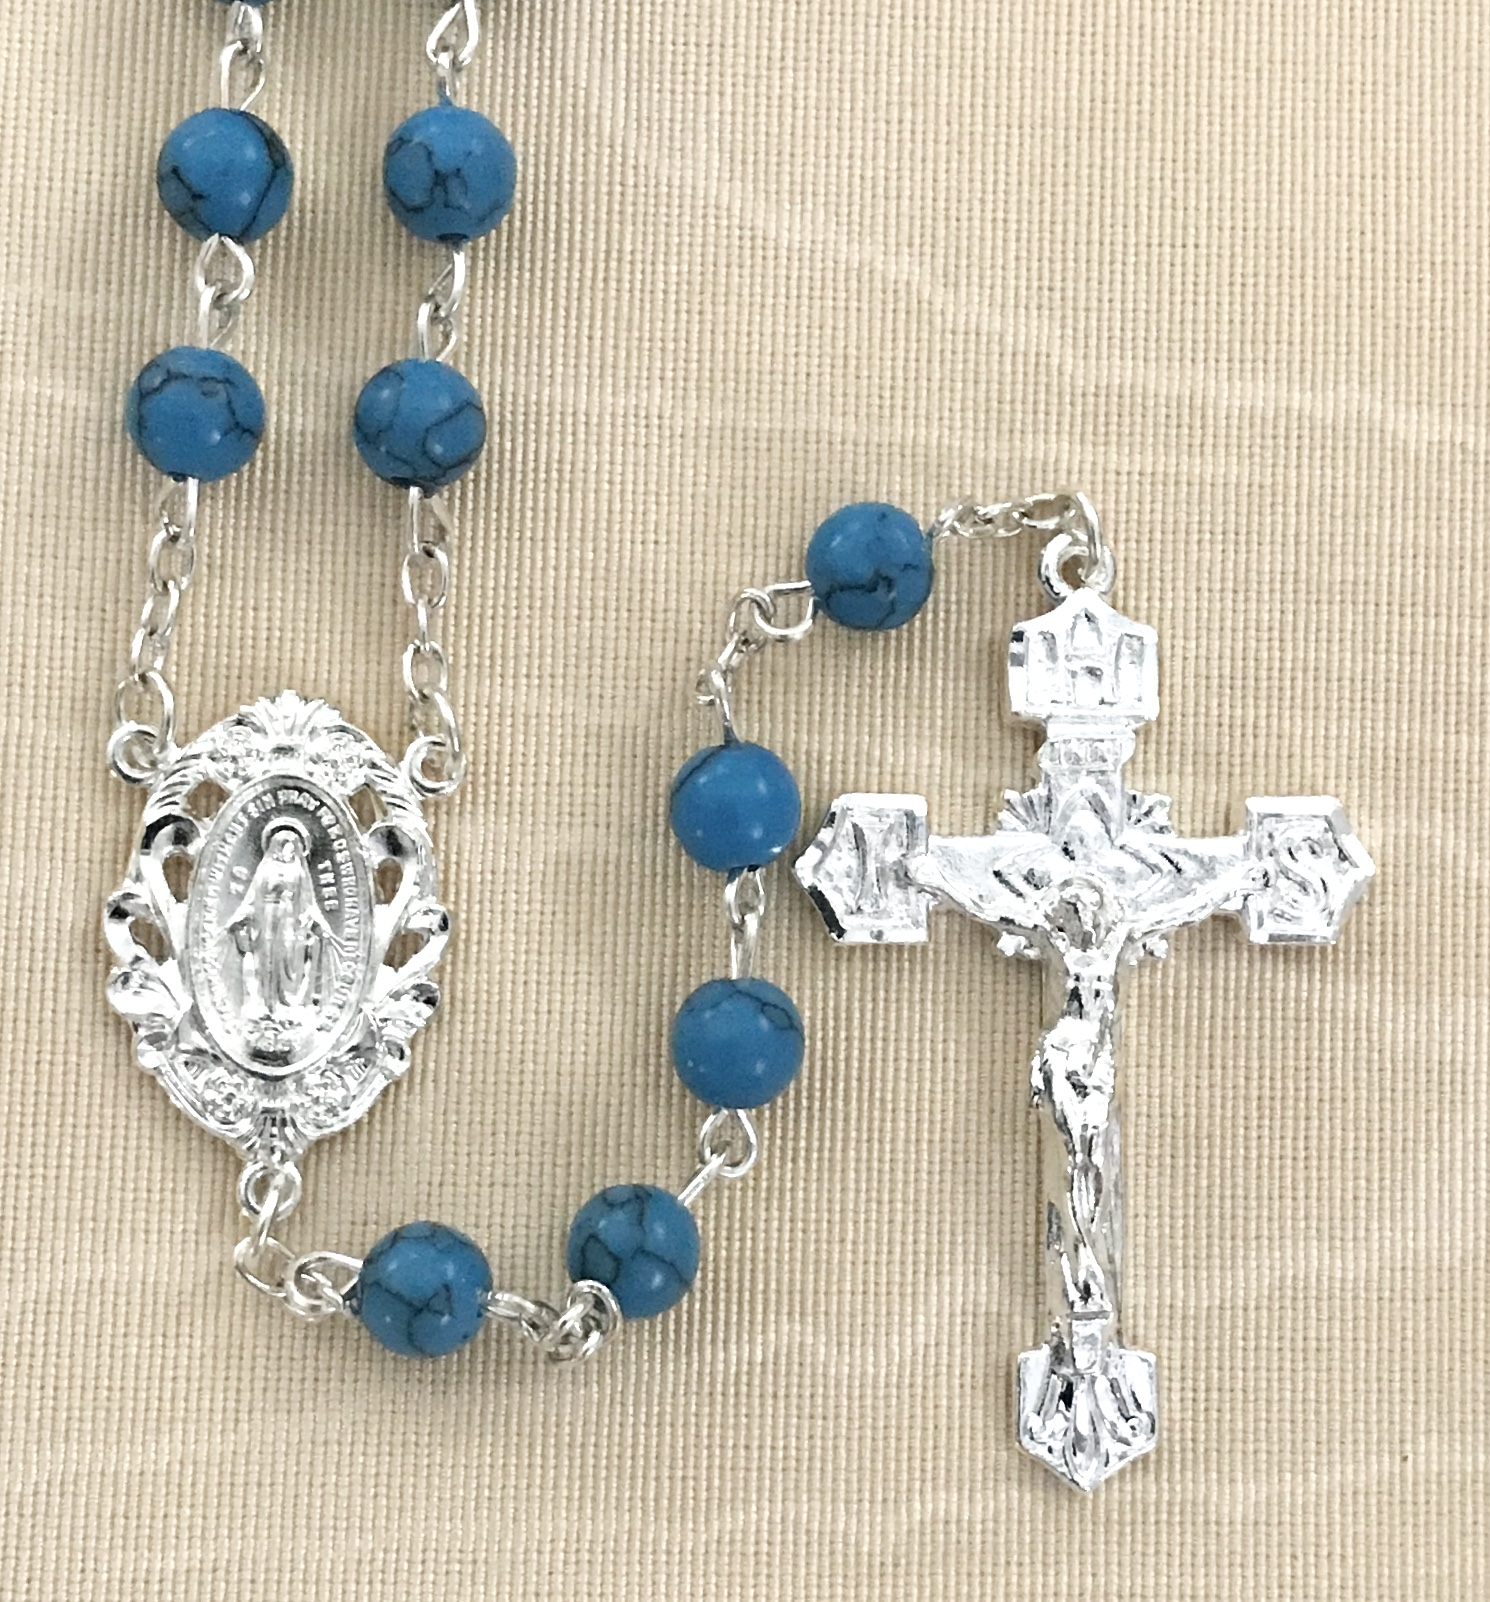 6mm TURQUOISE GEMSTONE ROSARY WITH STERLING SILVER PLATED CRUCIFIX AND CENTER GIFT BOXED